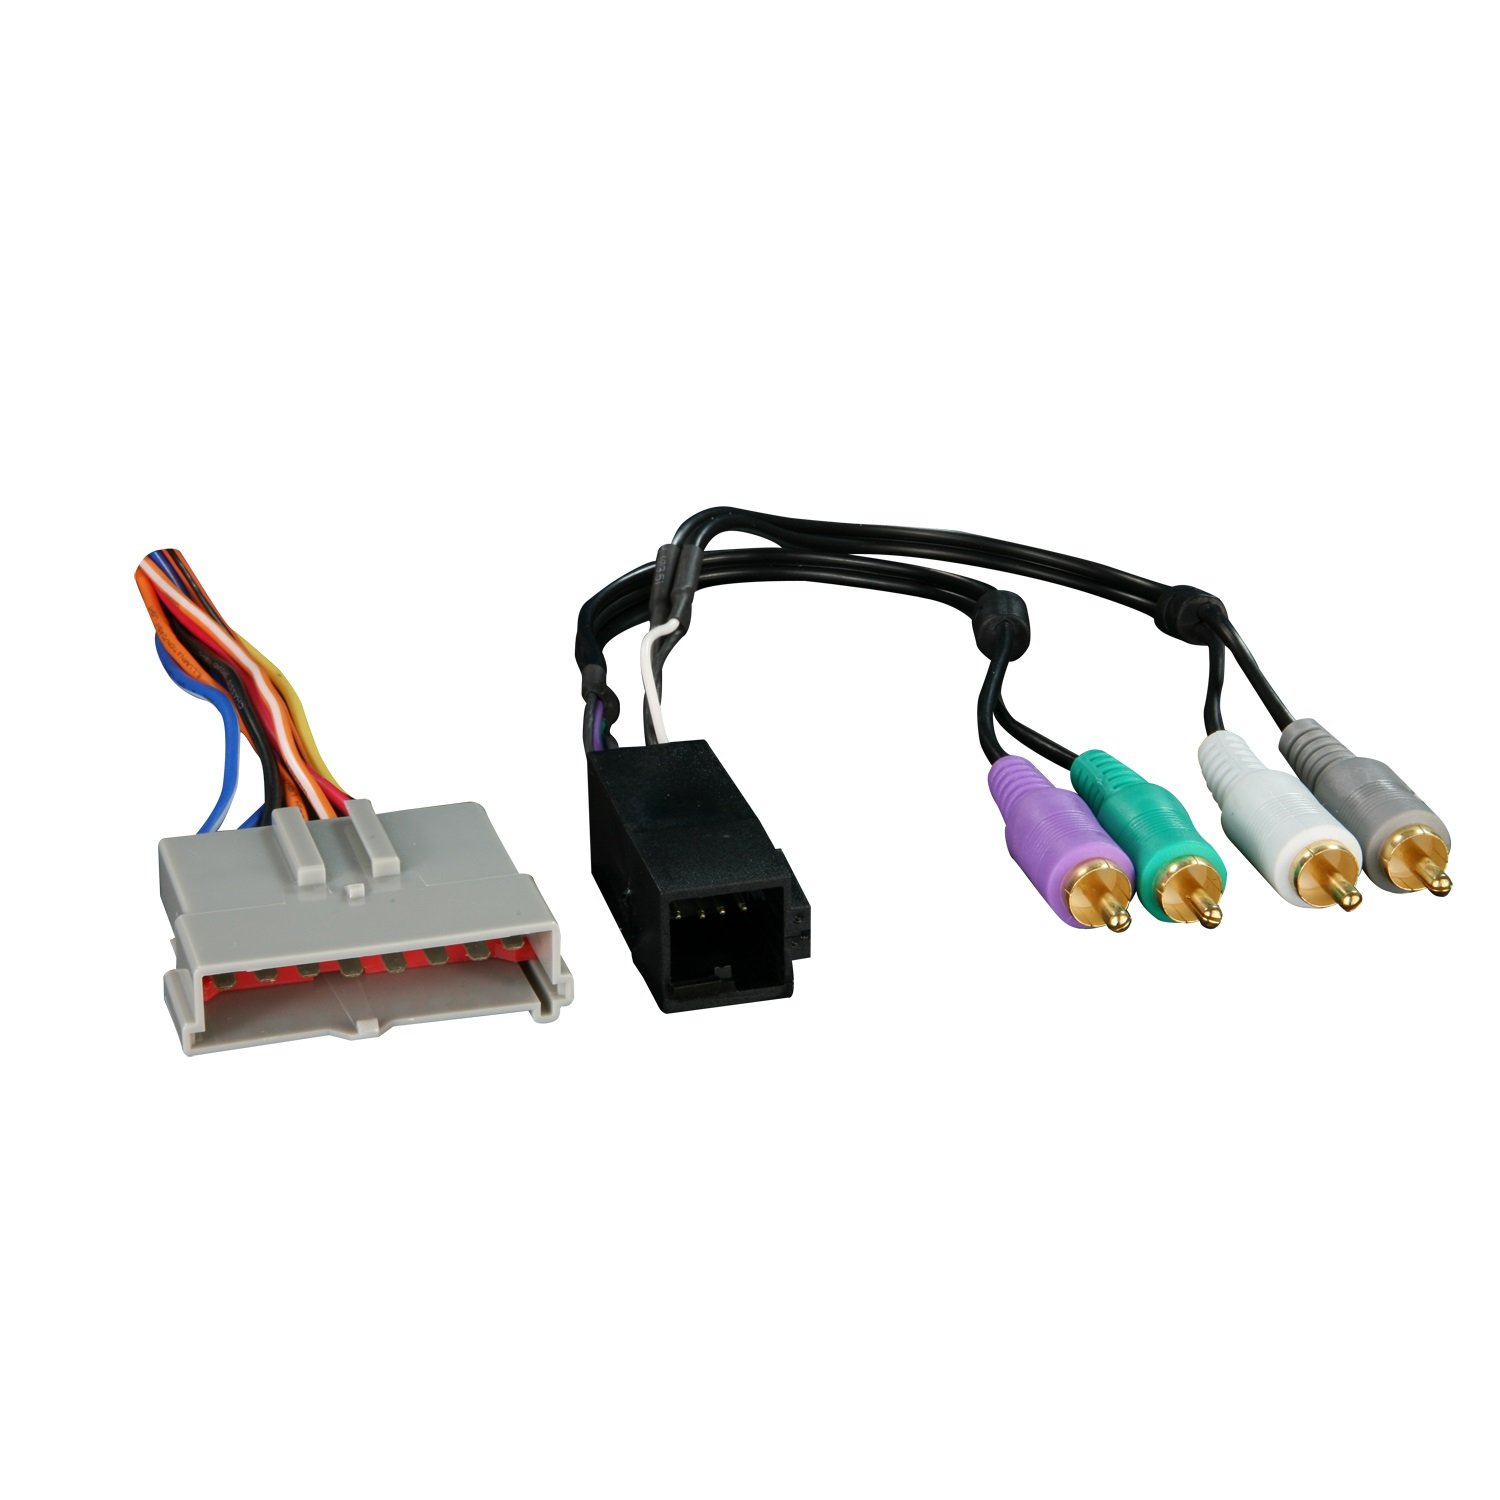 61dBSPZoitL._SL1500_ amazon com metra 70 5510 factory amplifier integration harness on 70 5510 wiring harness